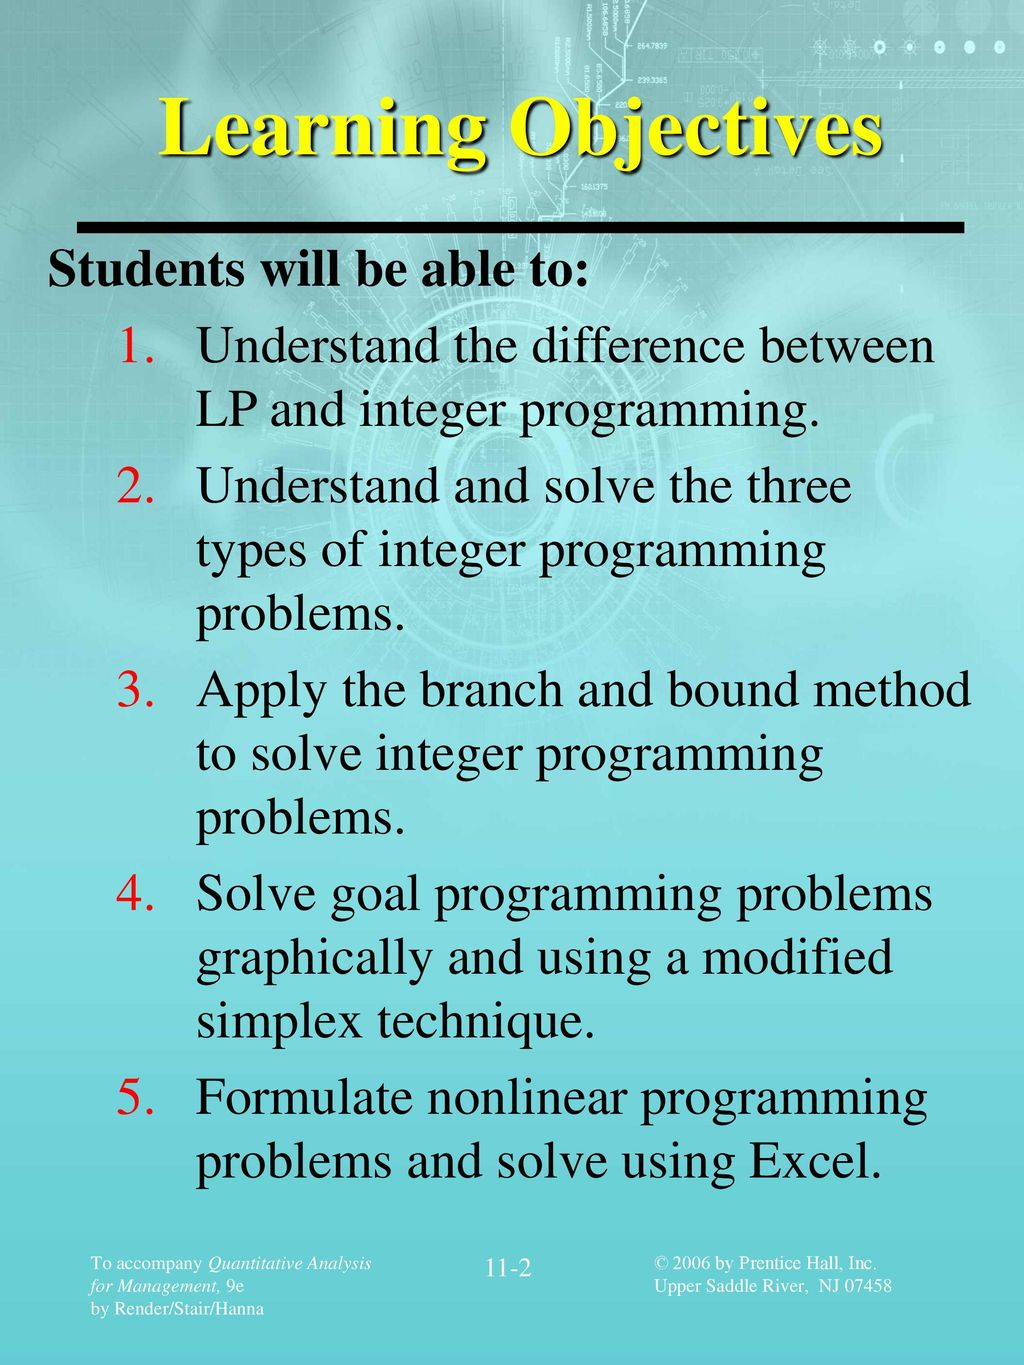 Nonlinear Programming Prepared by Lee Revere and John Large